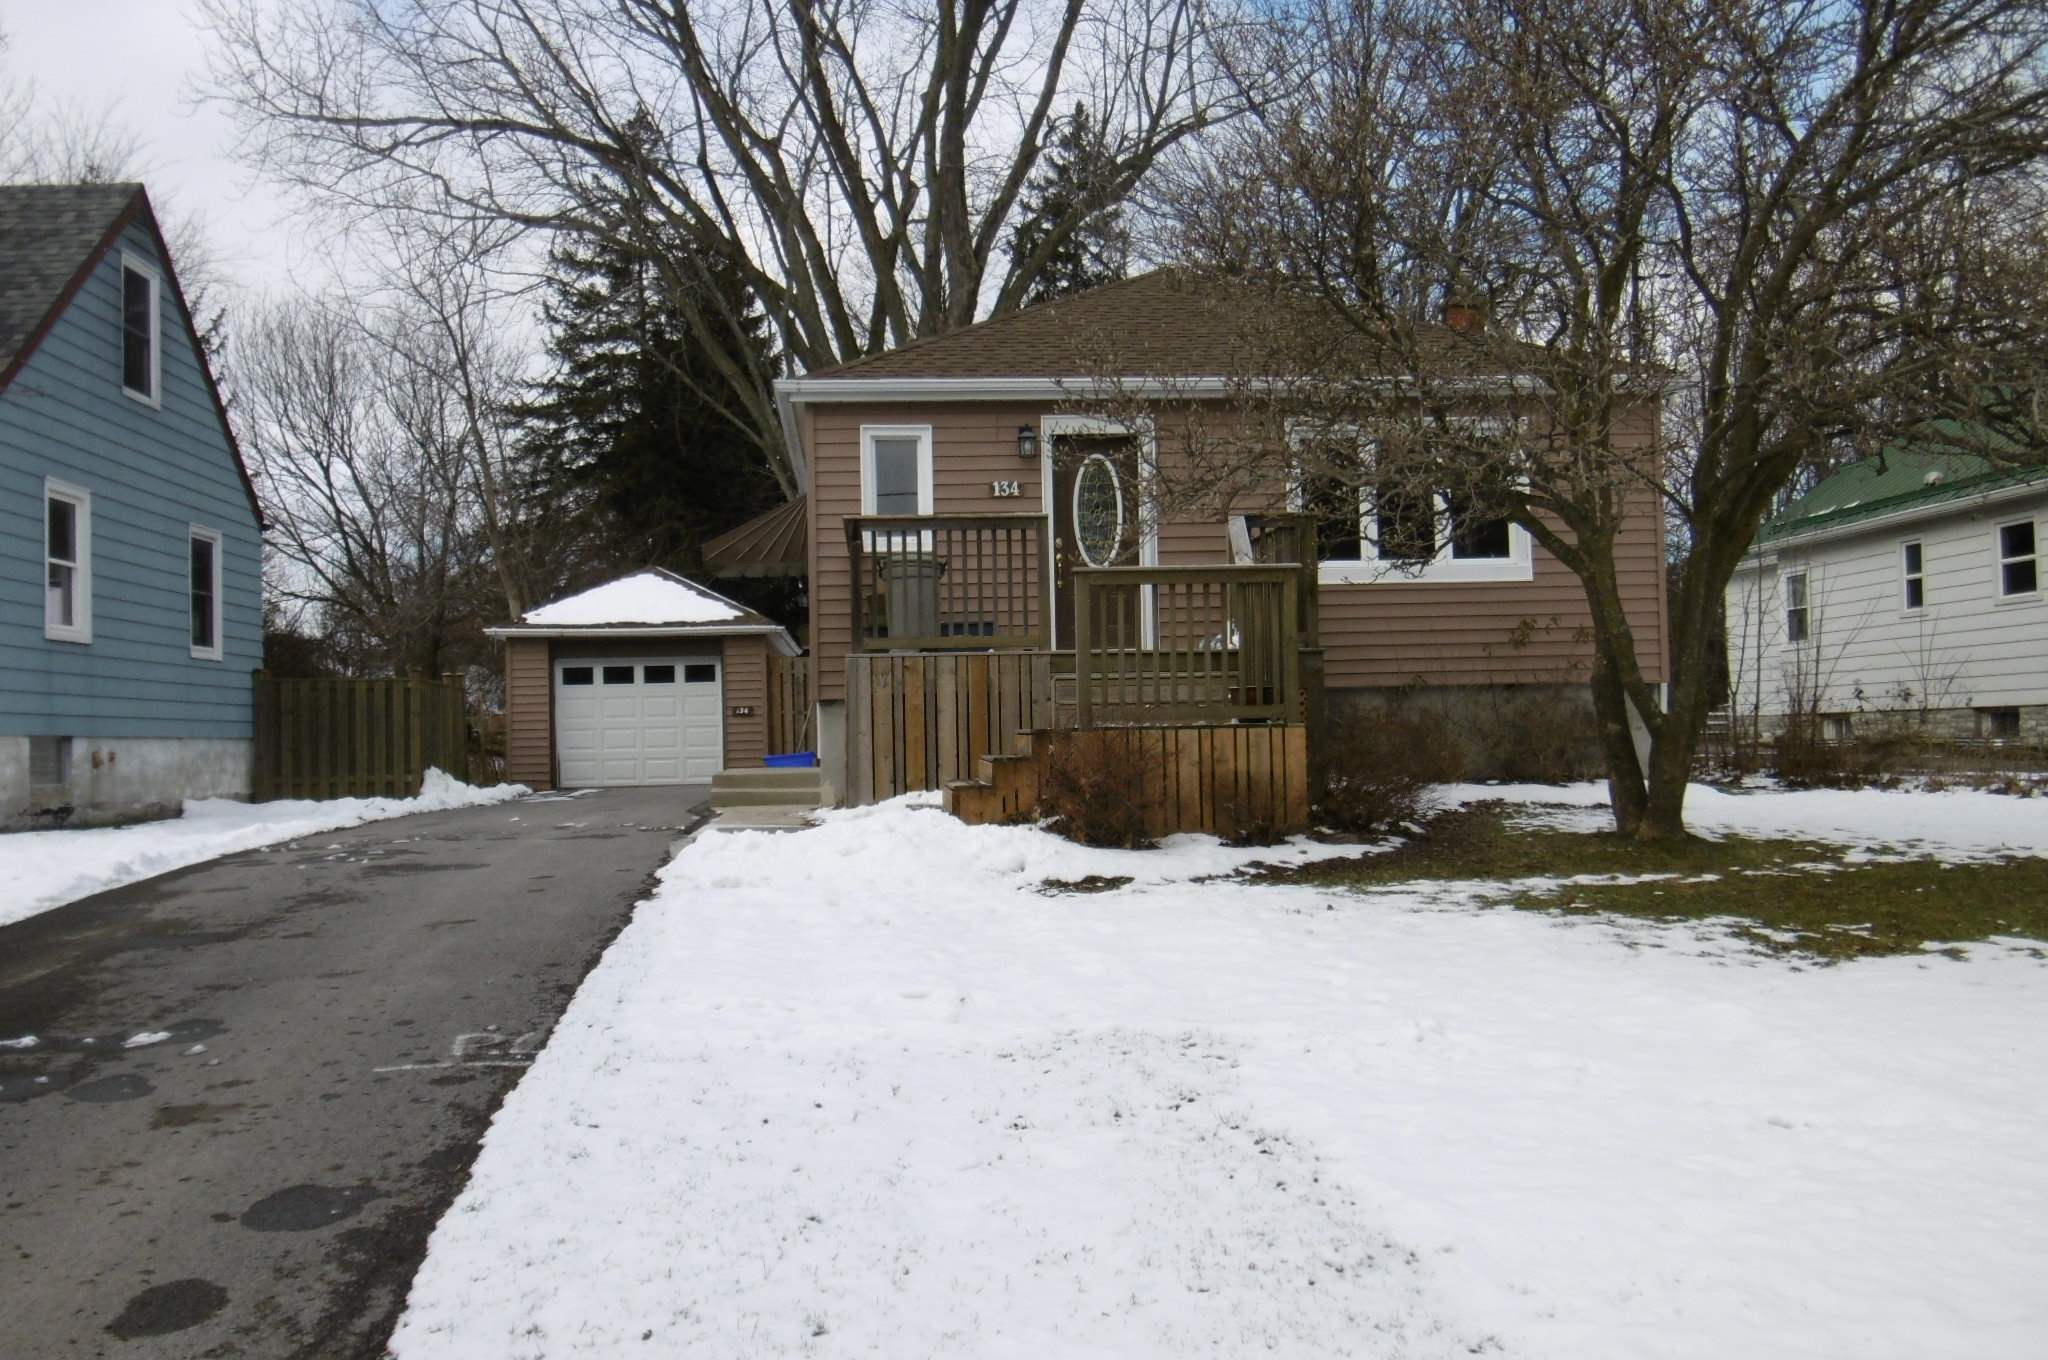 134 Hillendale Avenue, Kingston, Ontario, Canada